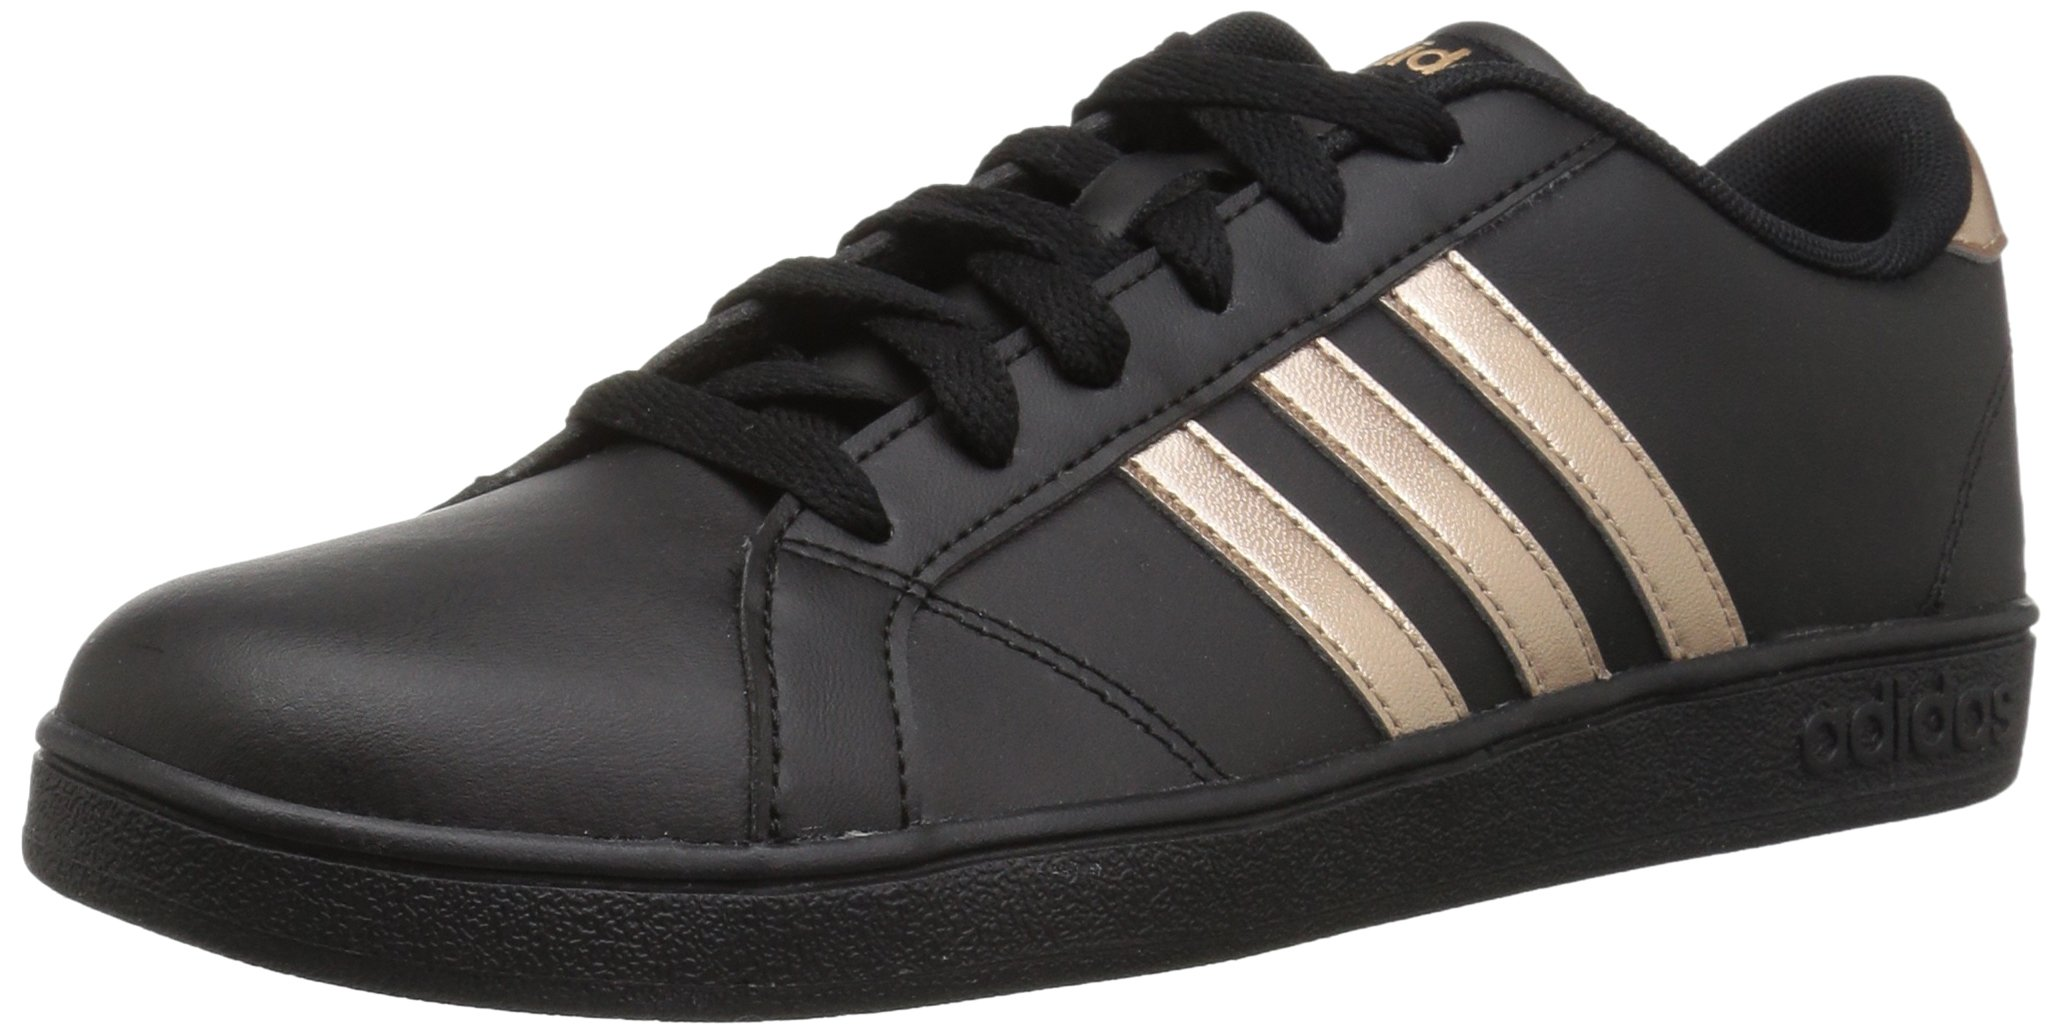 adidas Originals Unisex-Kids Baseline Sneaker, Black/Copper Metallic/Black, 13.5K M US Little Kid